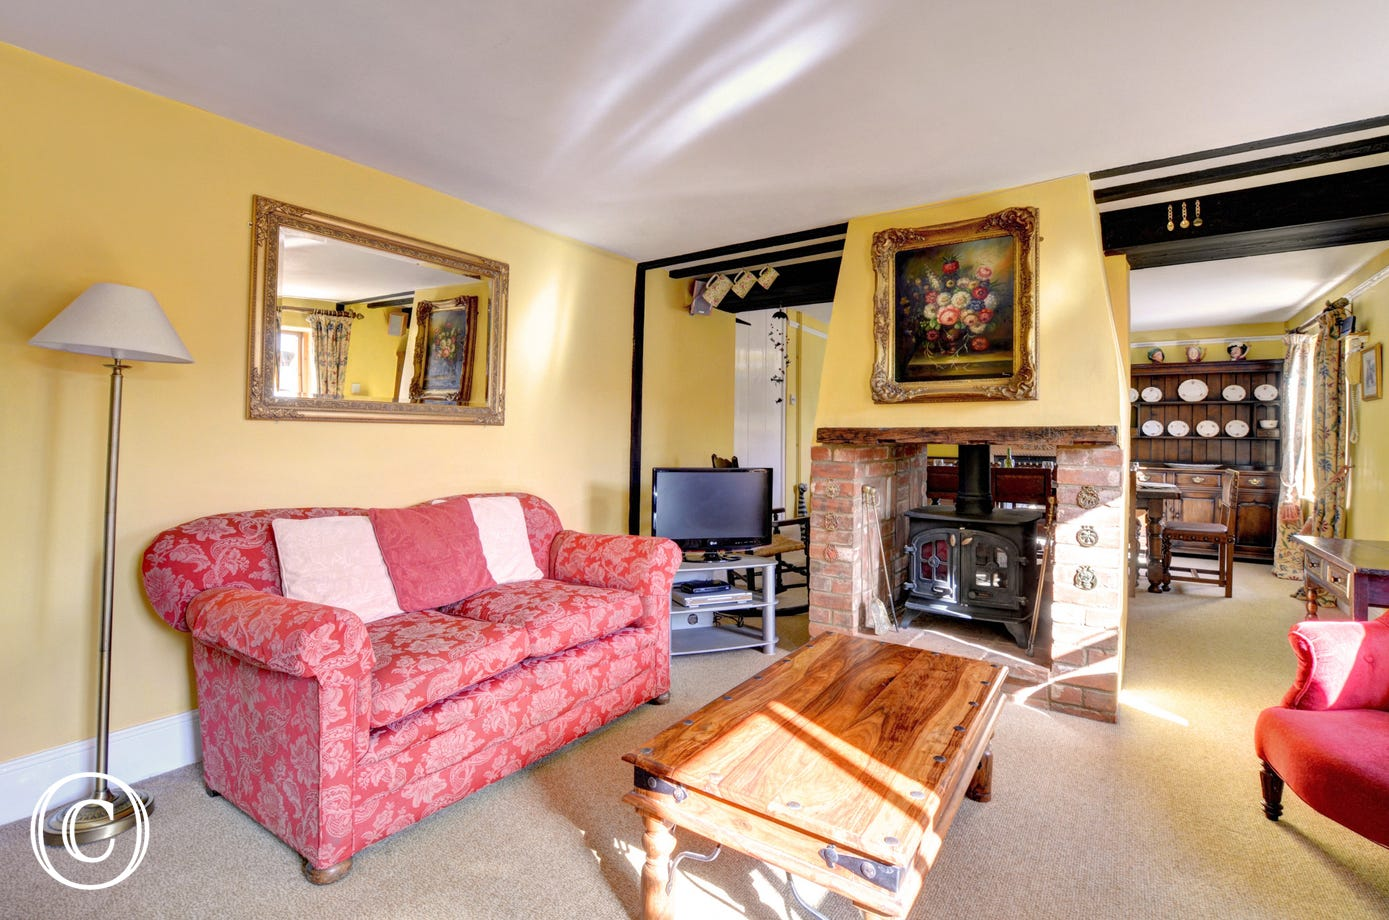 Spacious sitting room with comfy chairs and woodburner